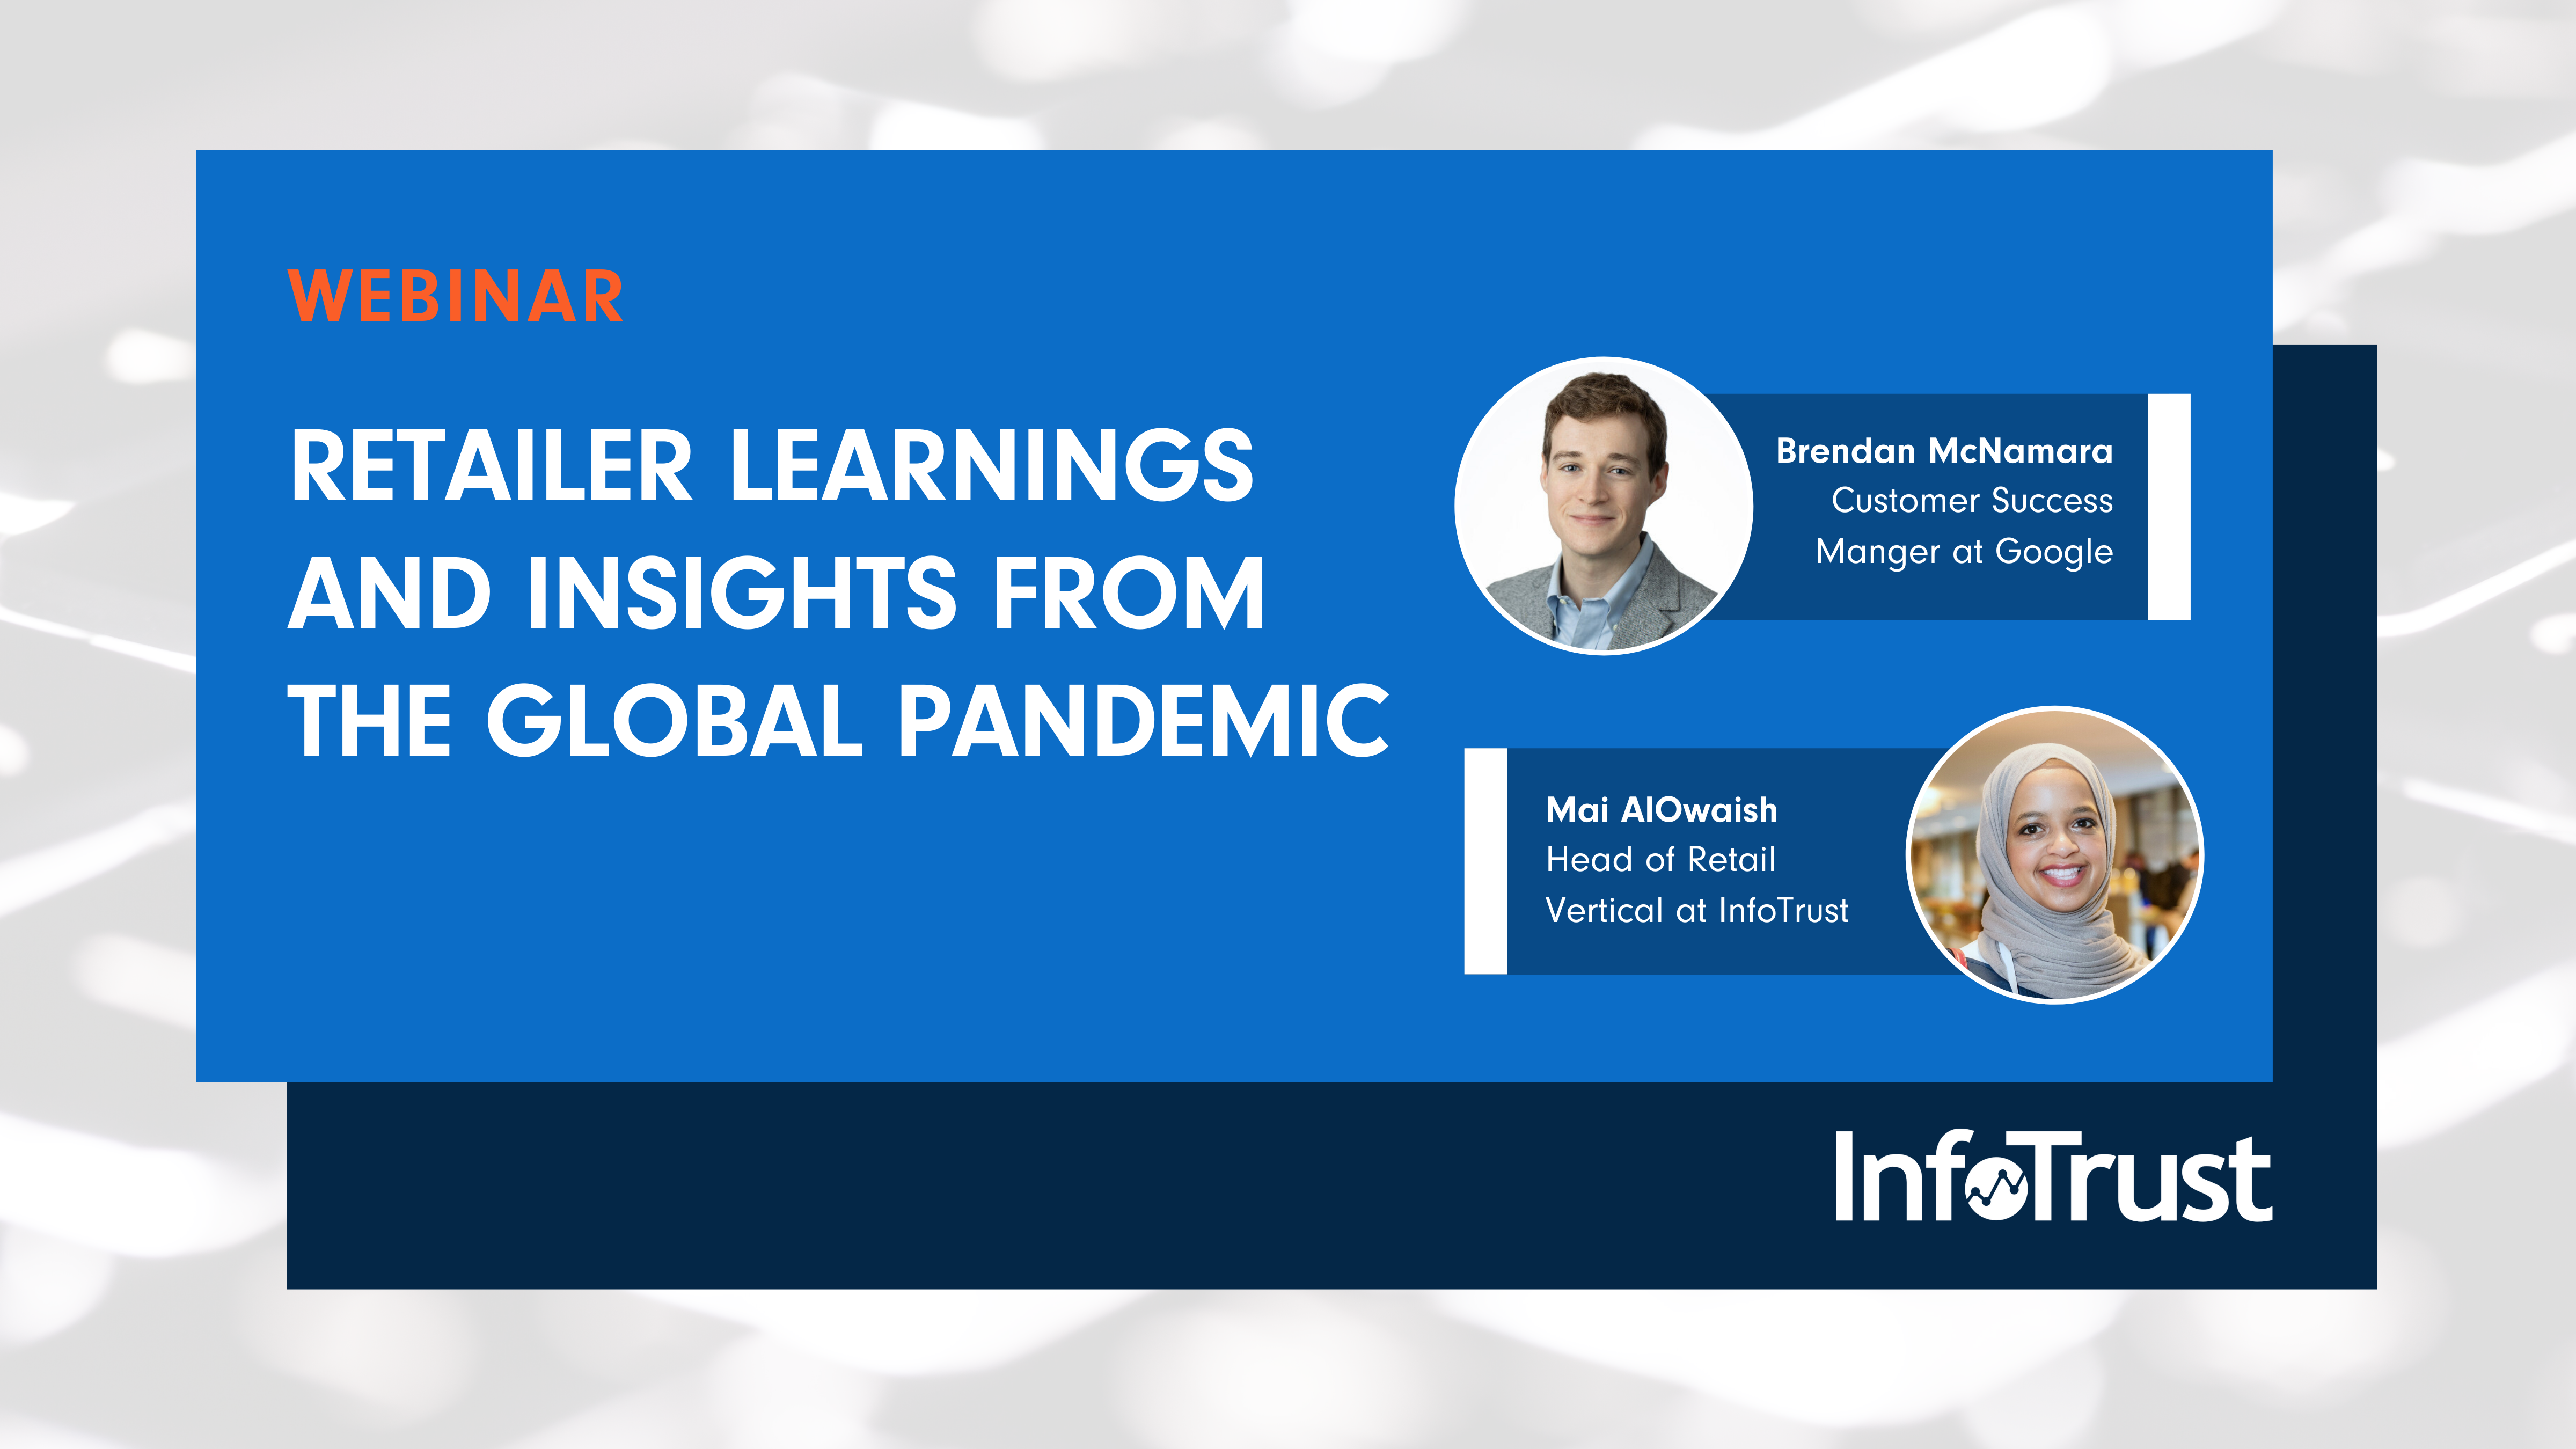 Retailer Learnings and Insights from the Global Pandemic